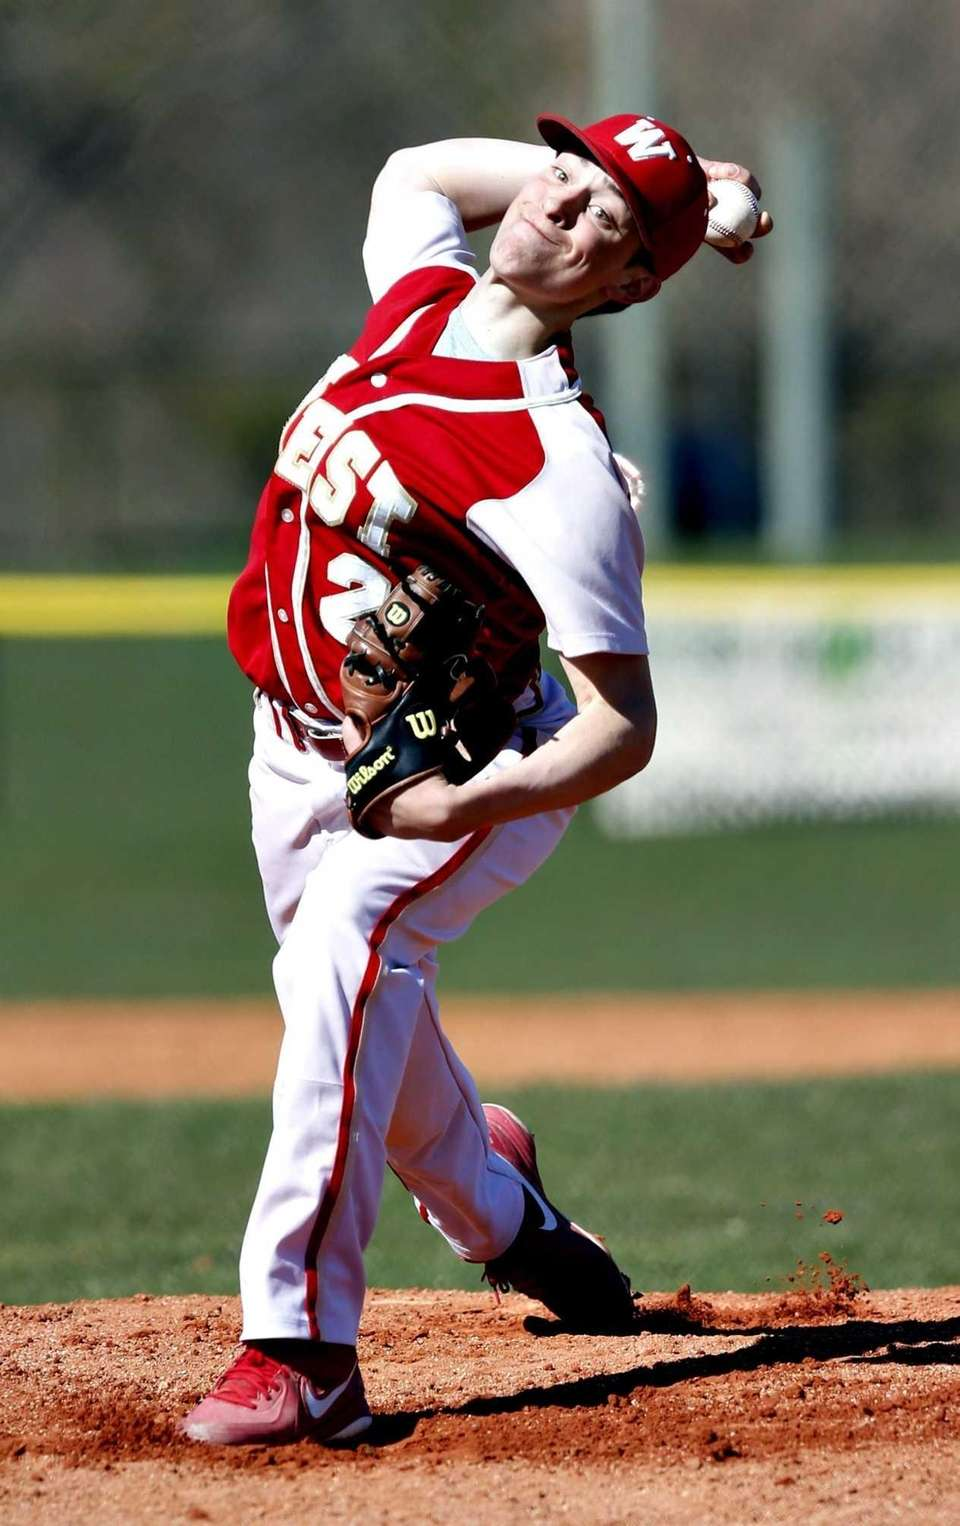 Hills West starting pitcher T.J. Montalbano throws against